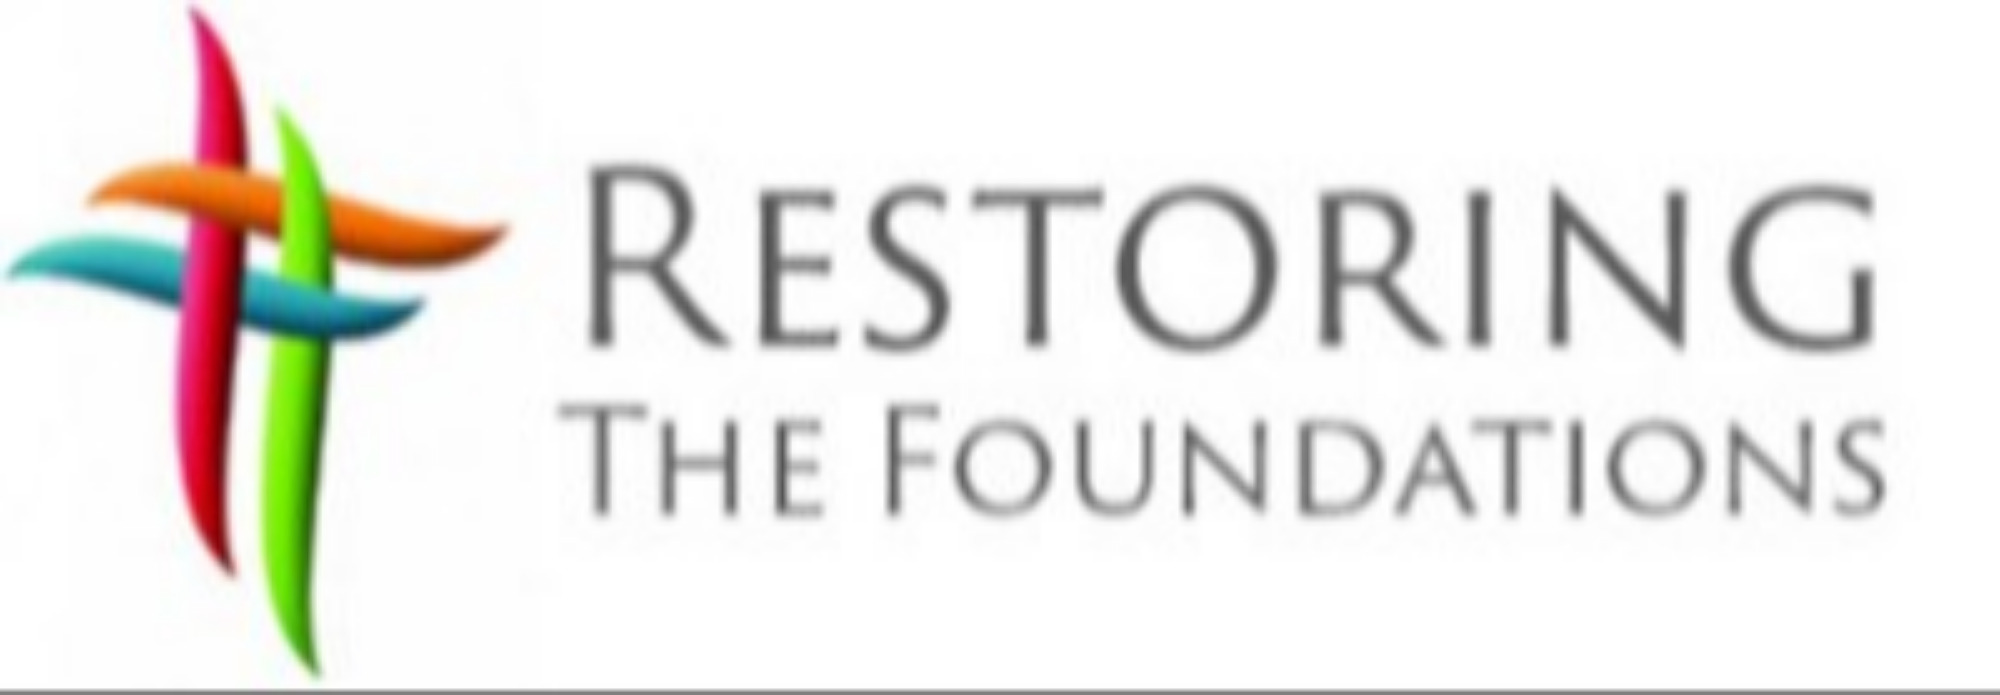 Restoring-the-Foundation